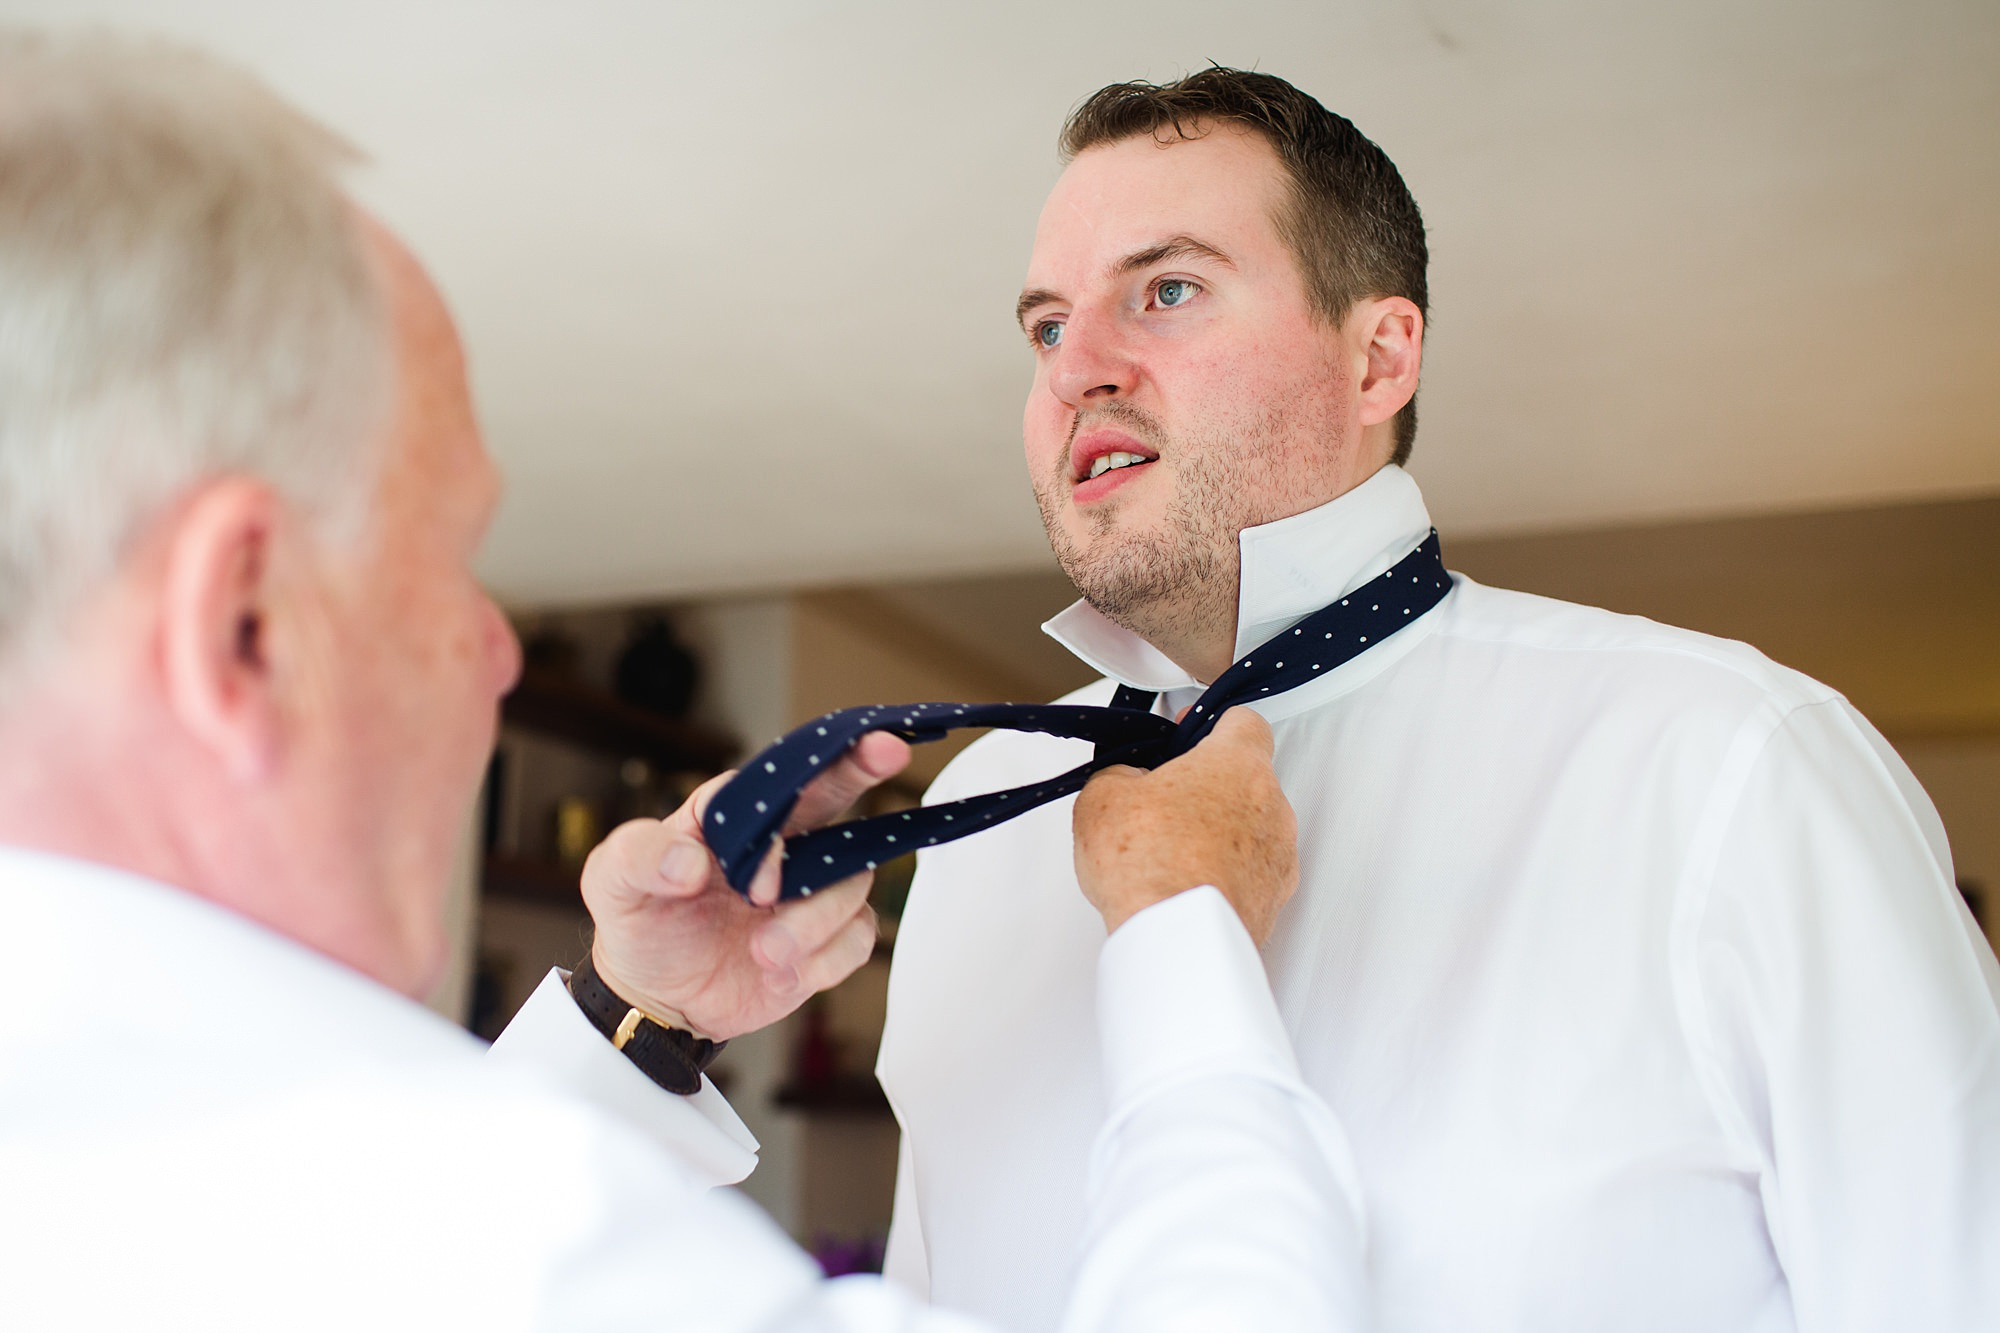 fun outdoor wedding groom's dad helps him with his tie